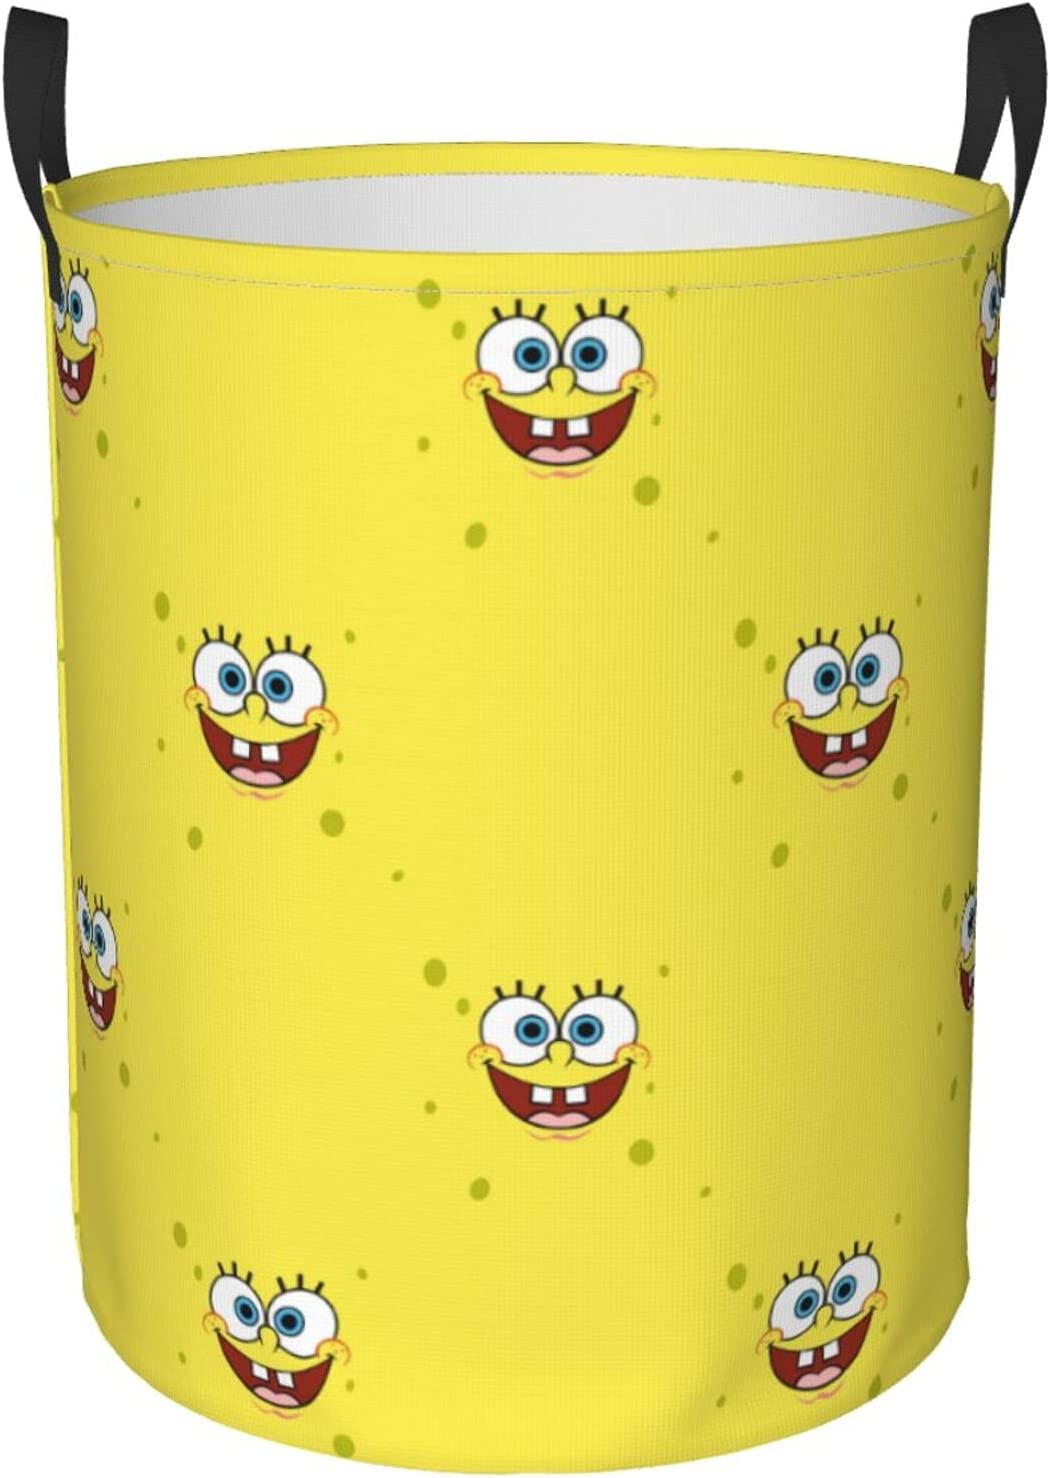 Max 57% OFF COCOCHILLA Spongebob Laundry Hampers Lightweight Financial sales sale Lar Collapsible